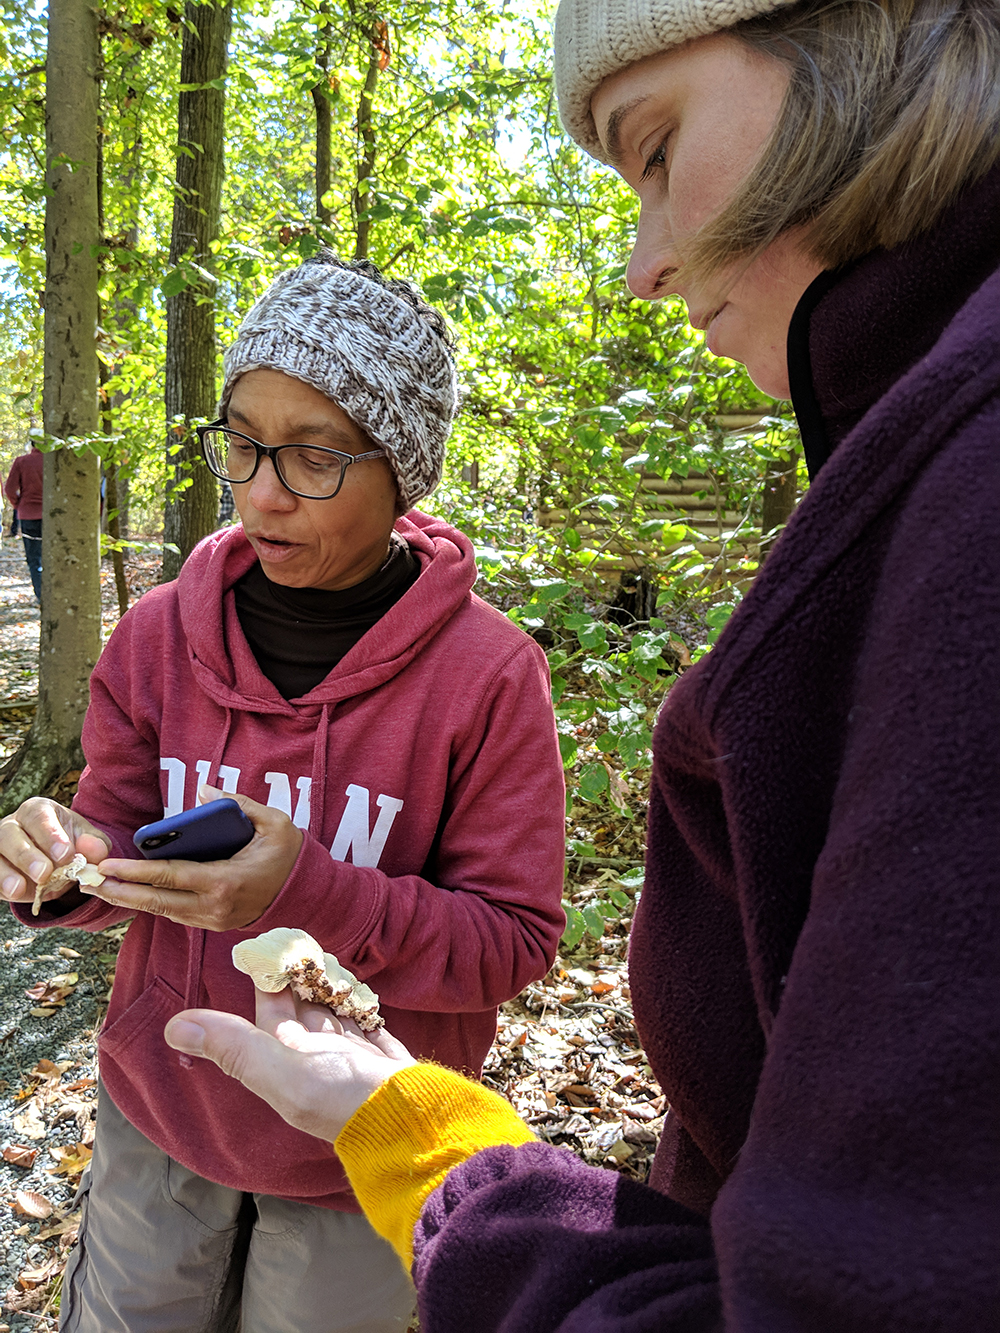 Laura Stewart helps identify mushrooms on the walk.